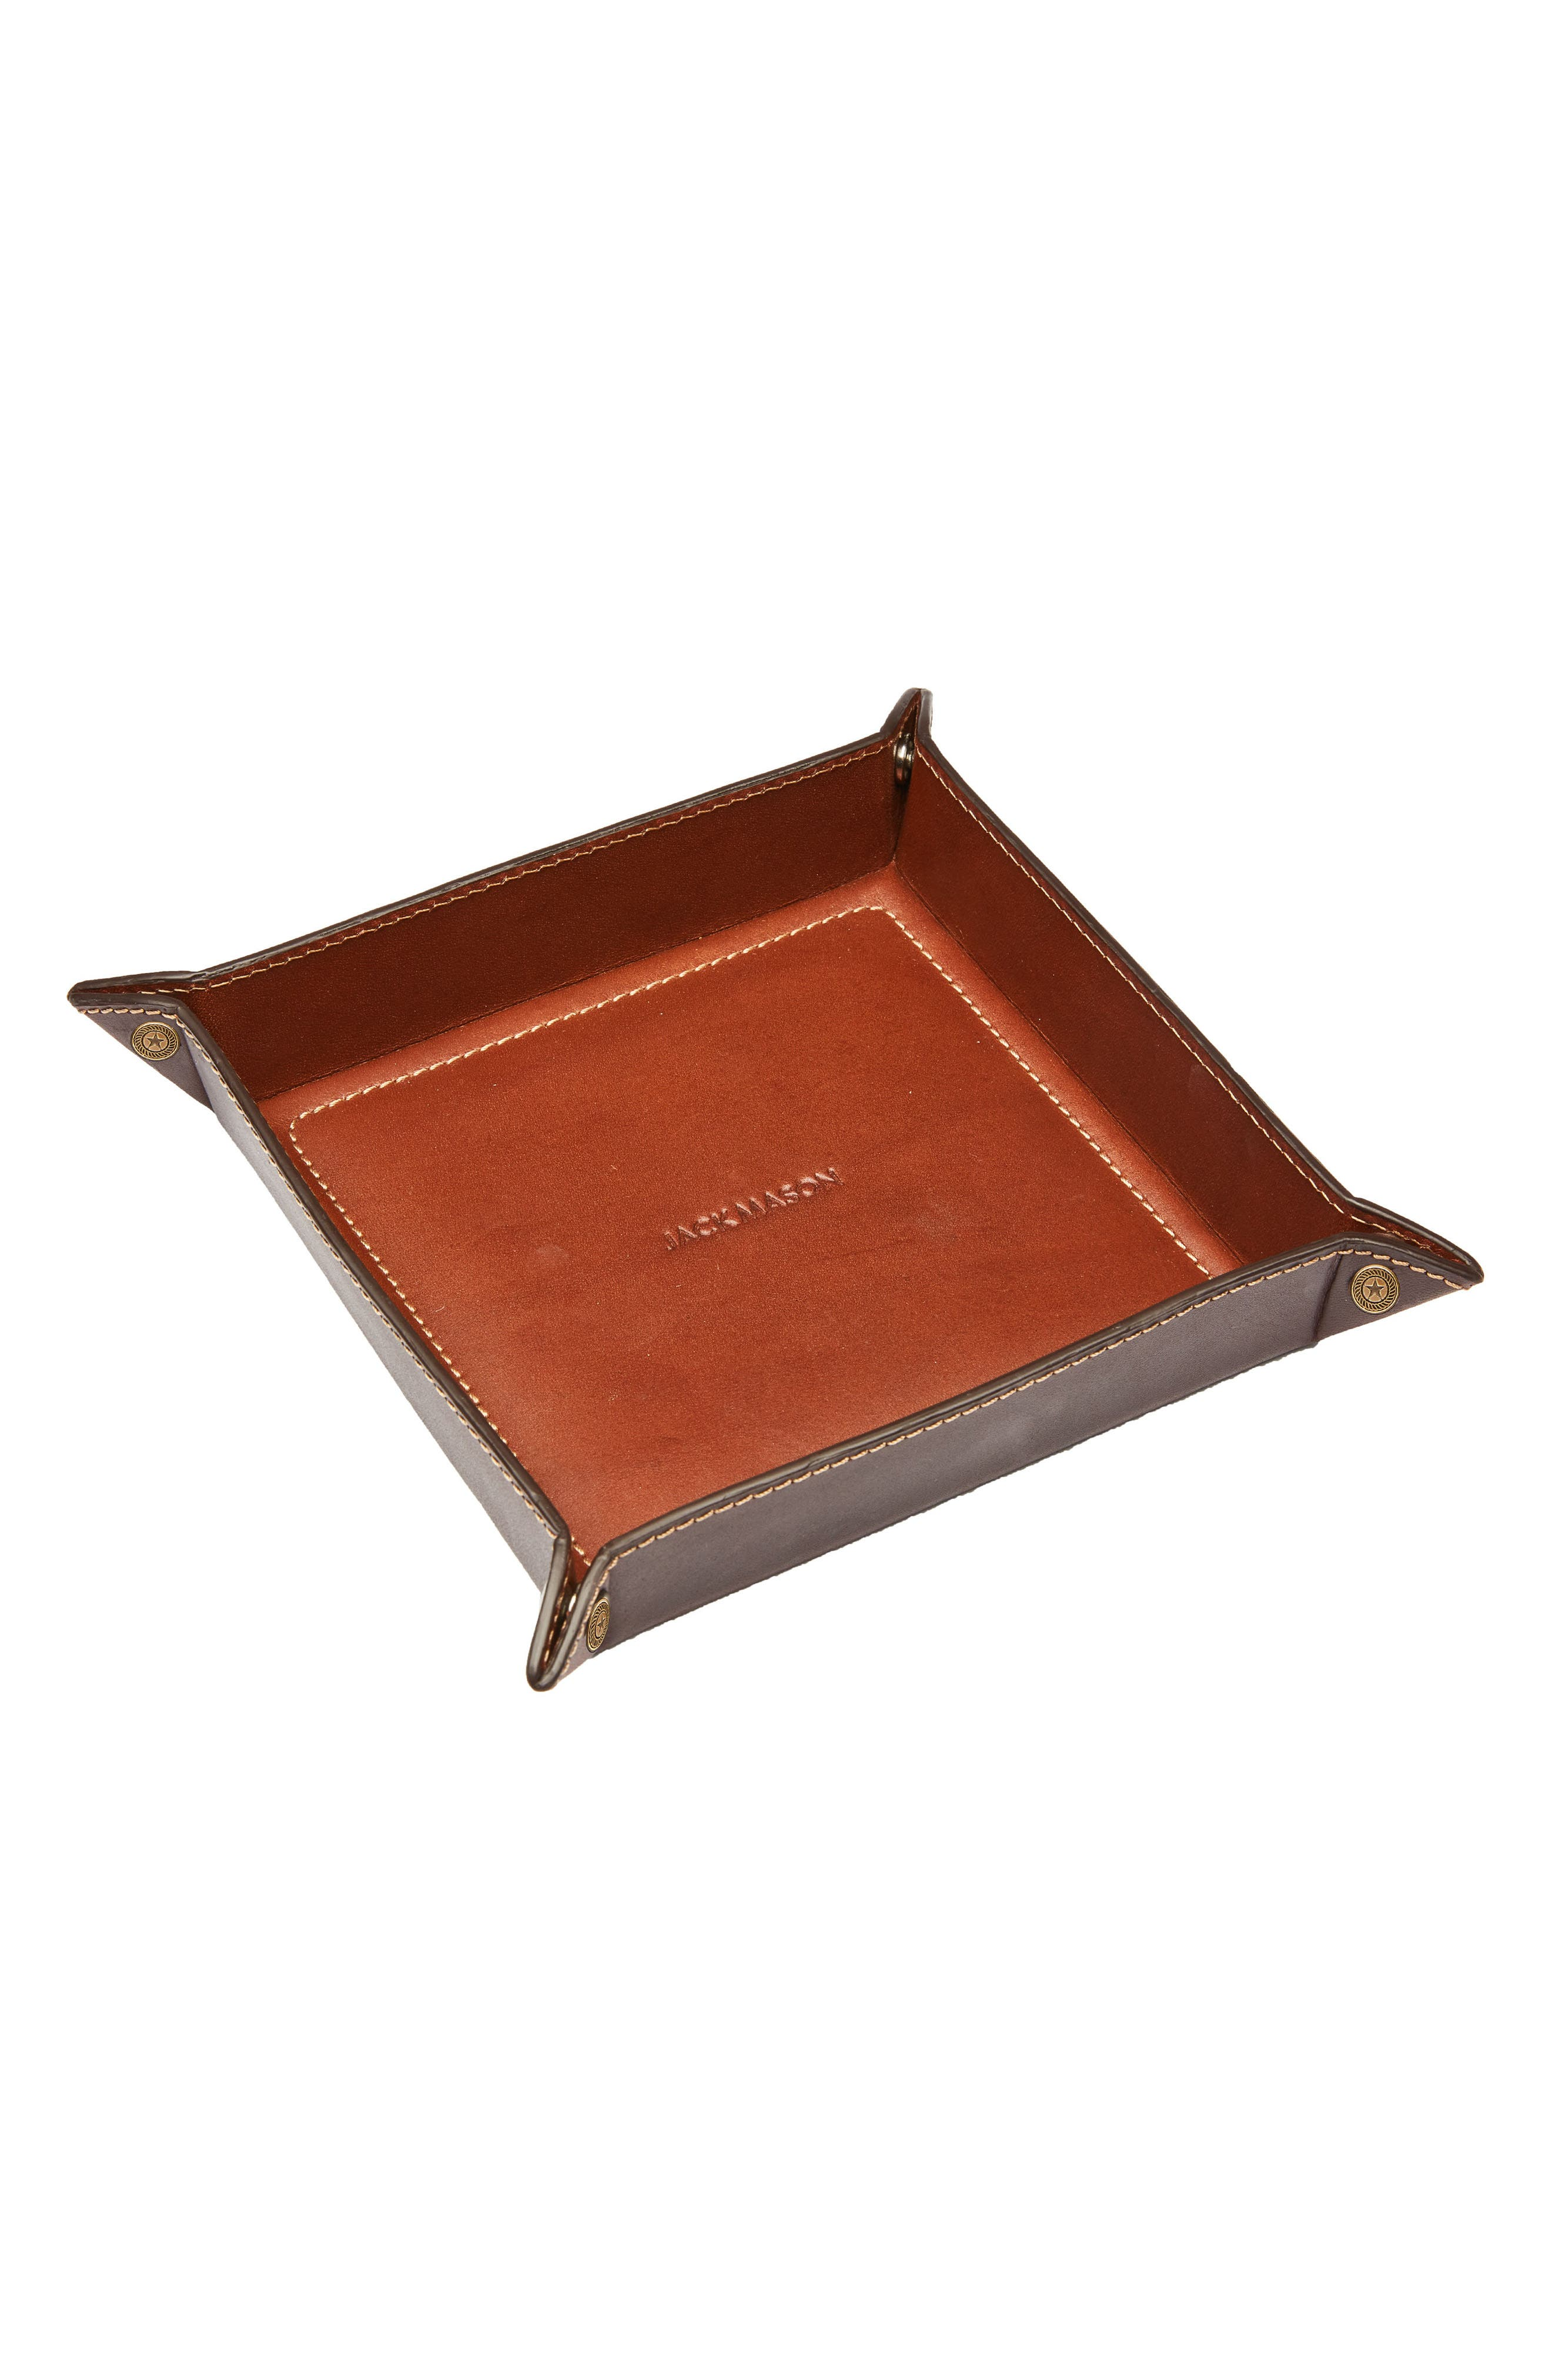 Small Pinched Leather Valet Tray,                             Main thumbnail 1, color,                             230